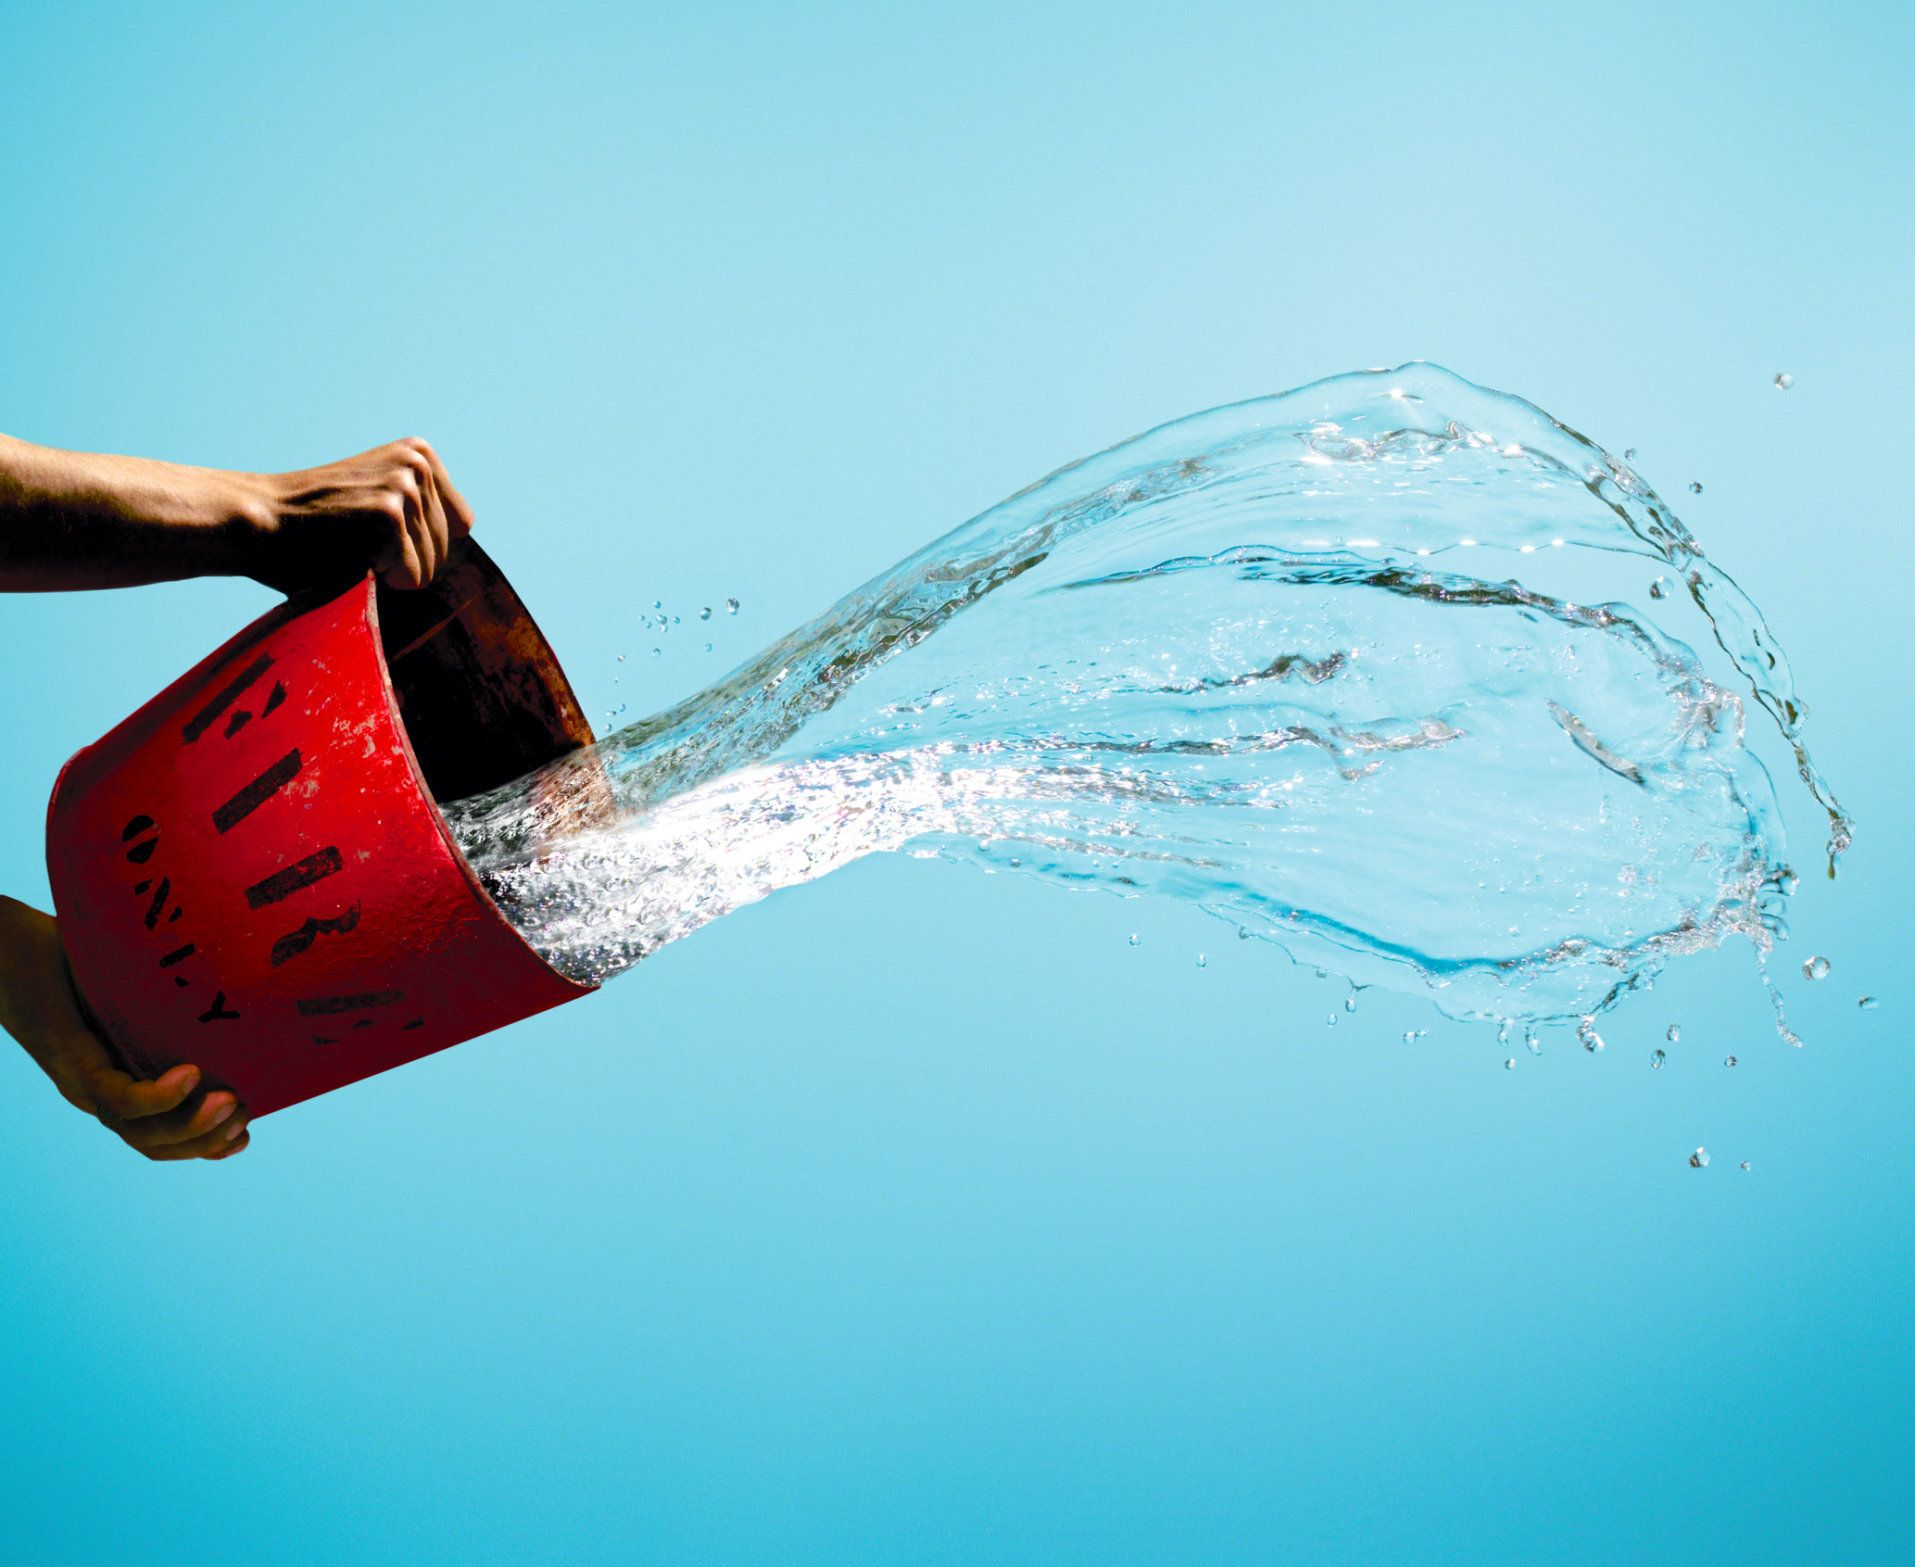 Person throwing bucket of water